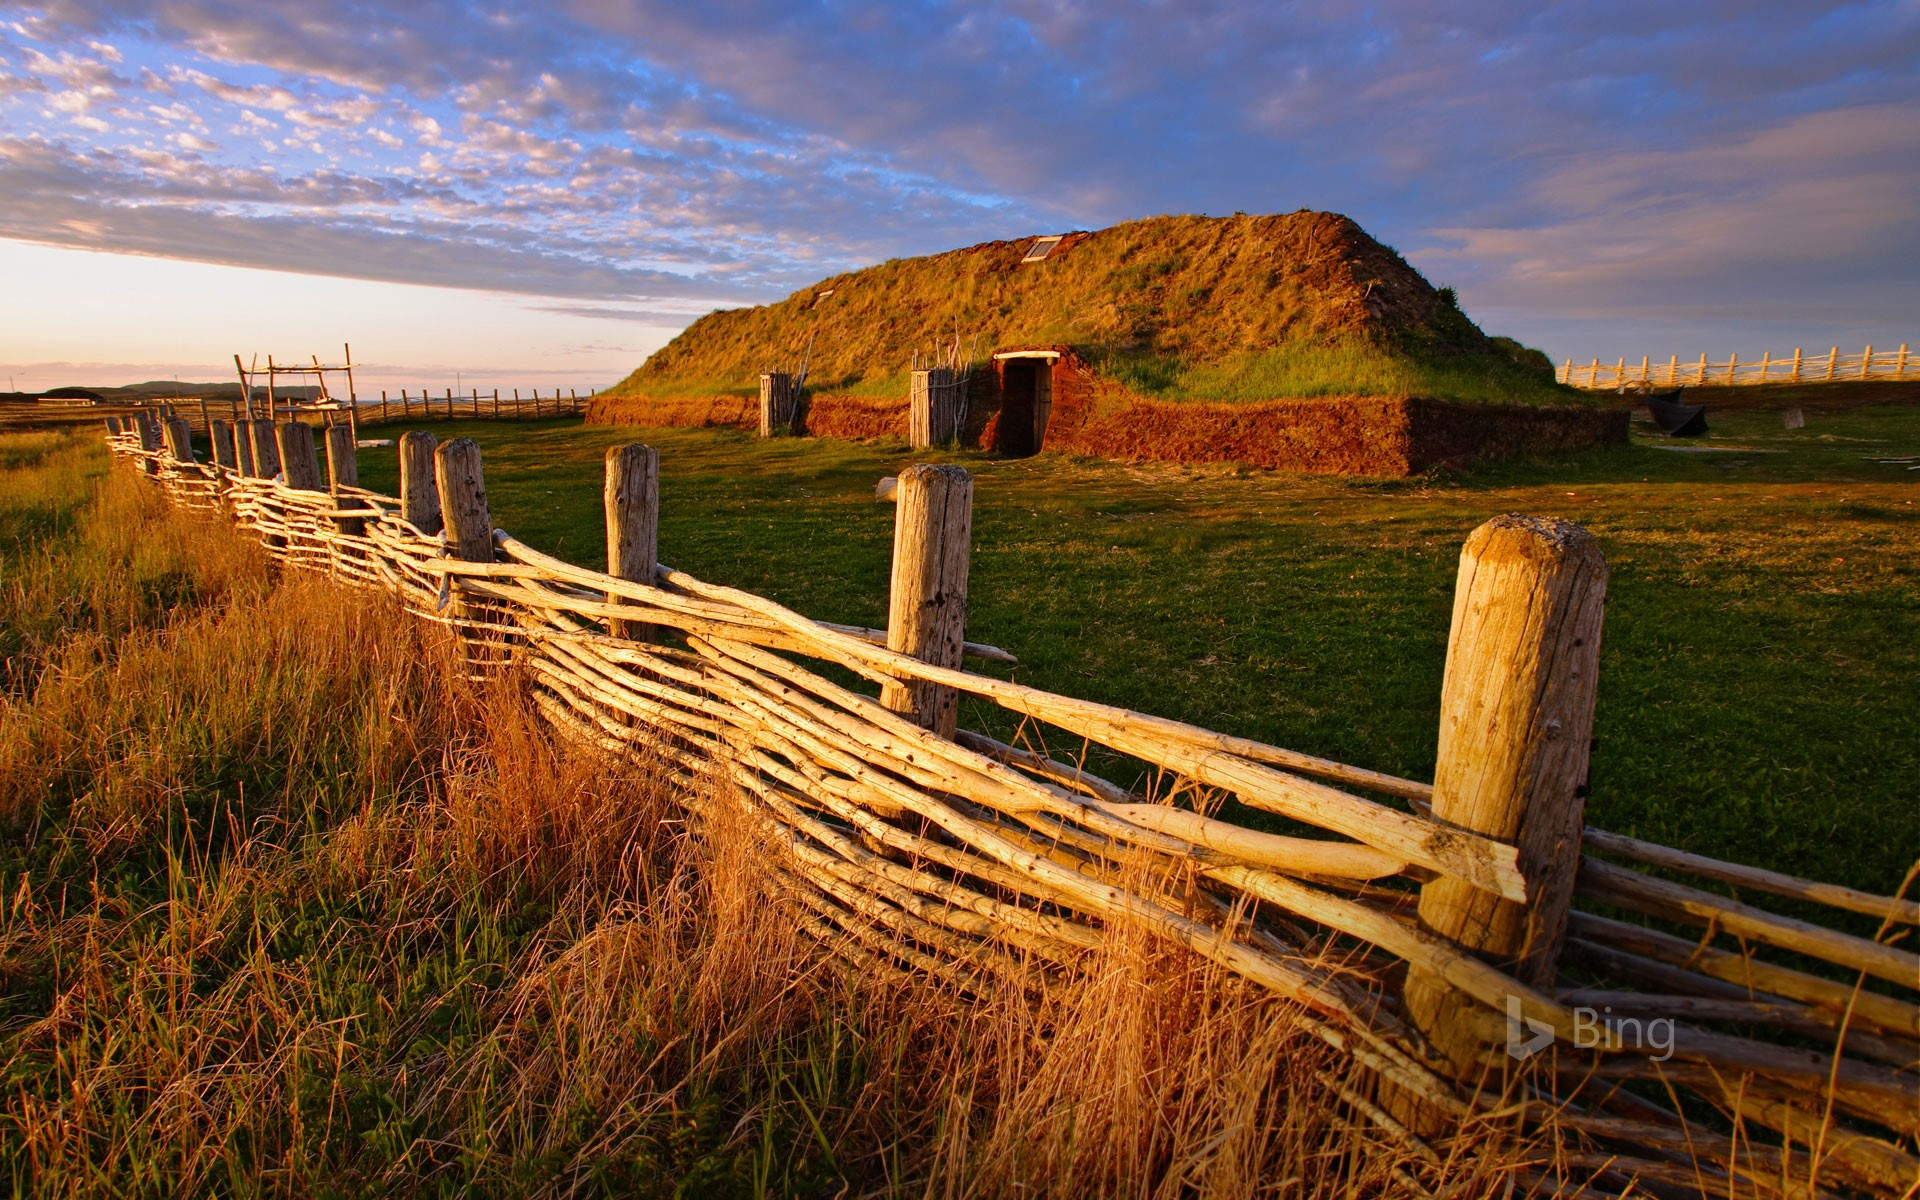 For Leif Erikson Day, a Norse building at L'Anse aux Meadows National Historic Site in Newfoundland, Canada